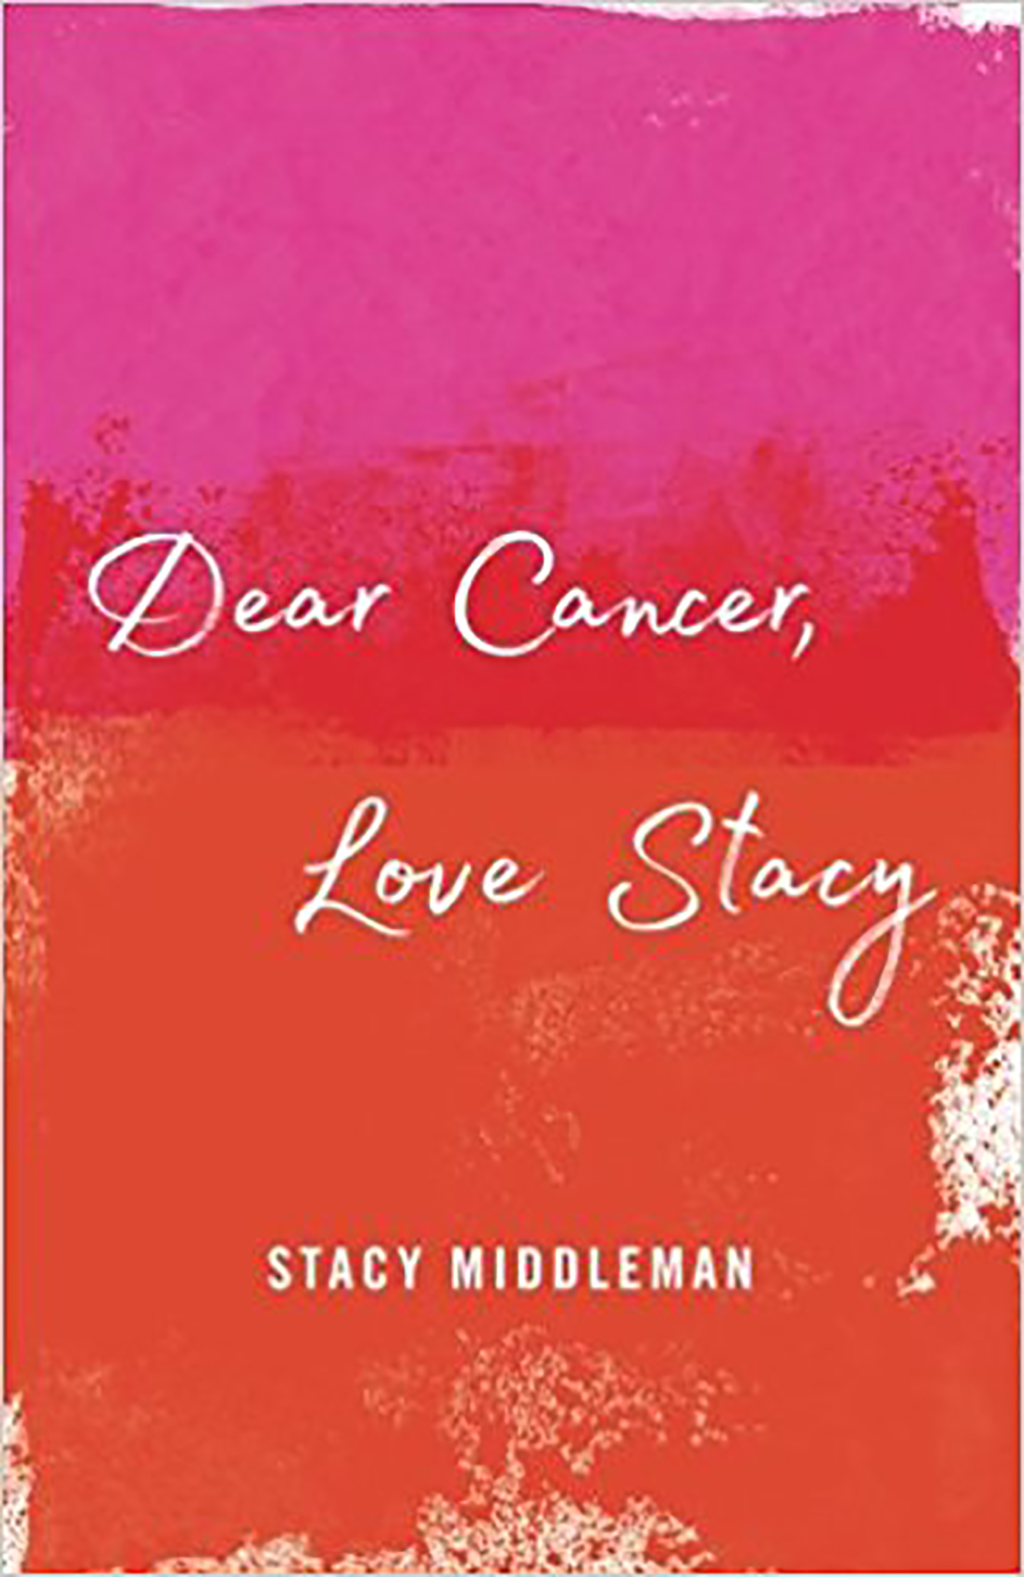 Dear Cancer Love Stacy by Stacy Middleman